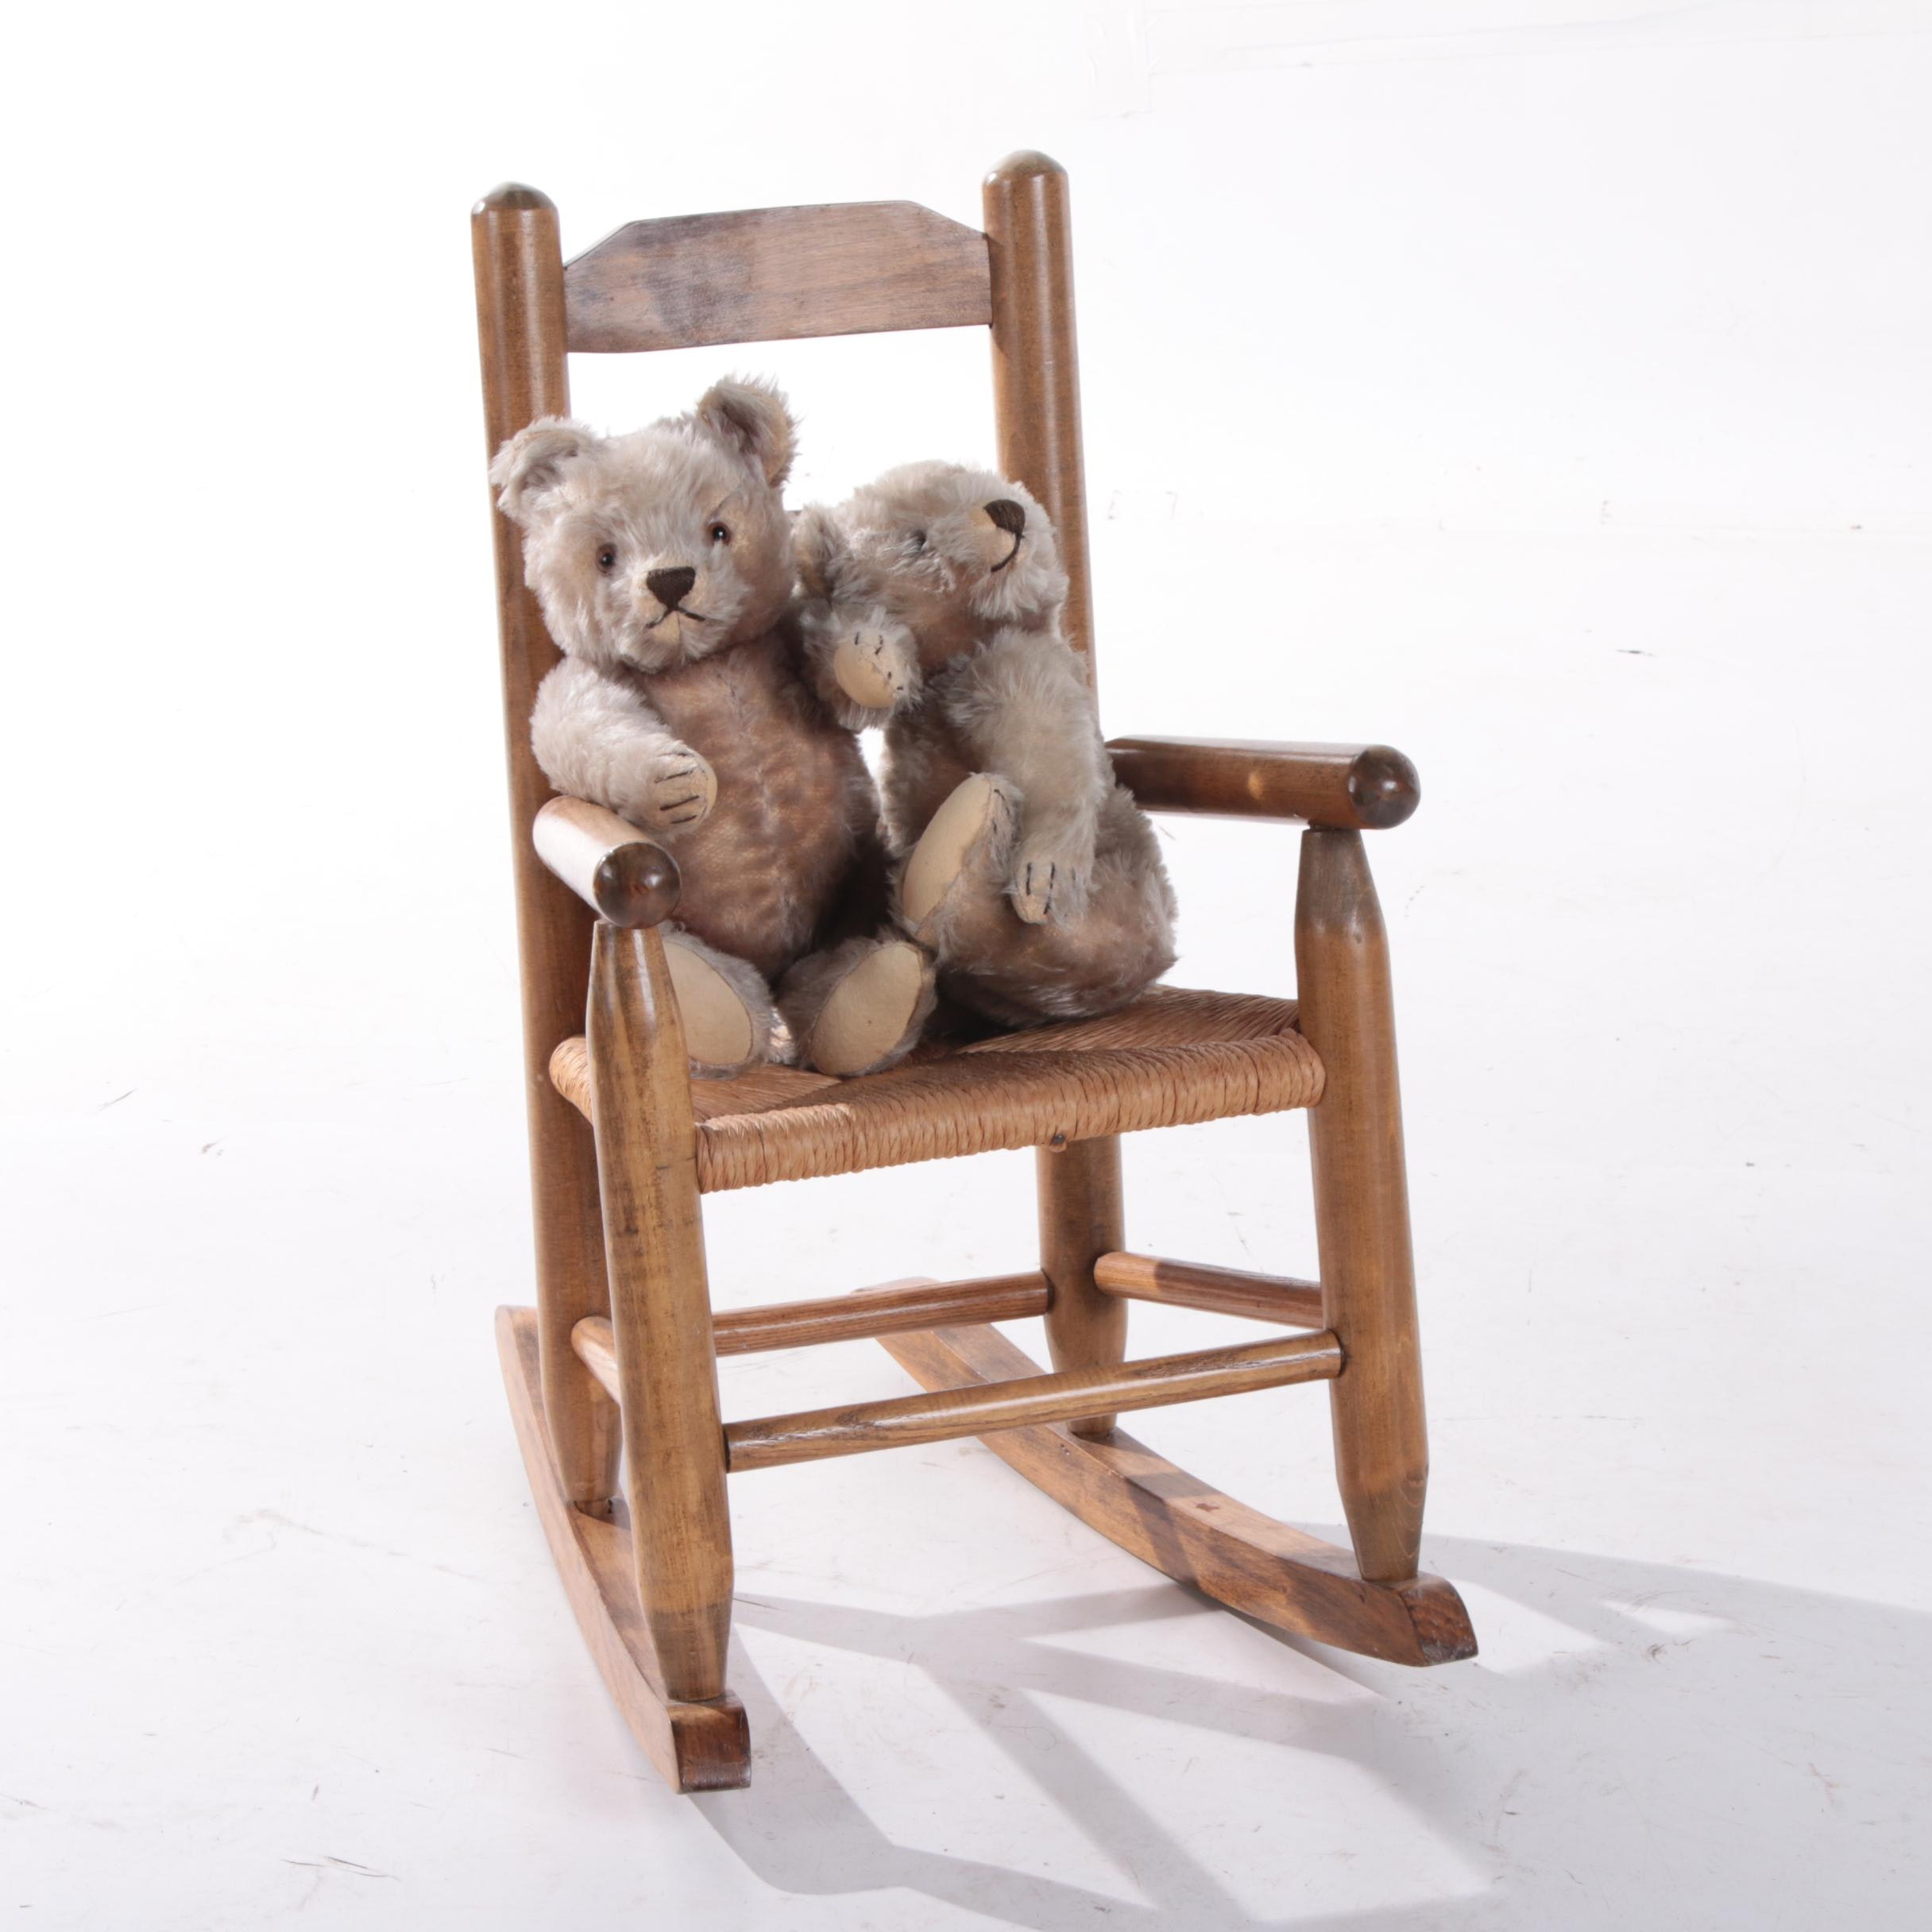 Oak Child Size Rocking Chair, with Steiff Bears, 20th Cent